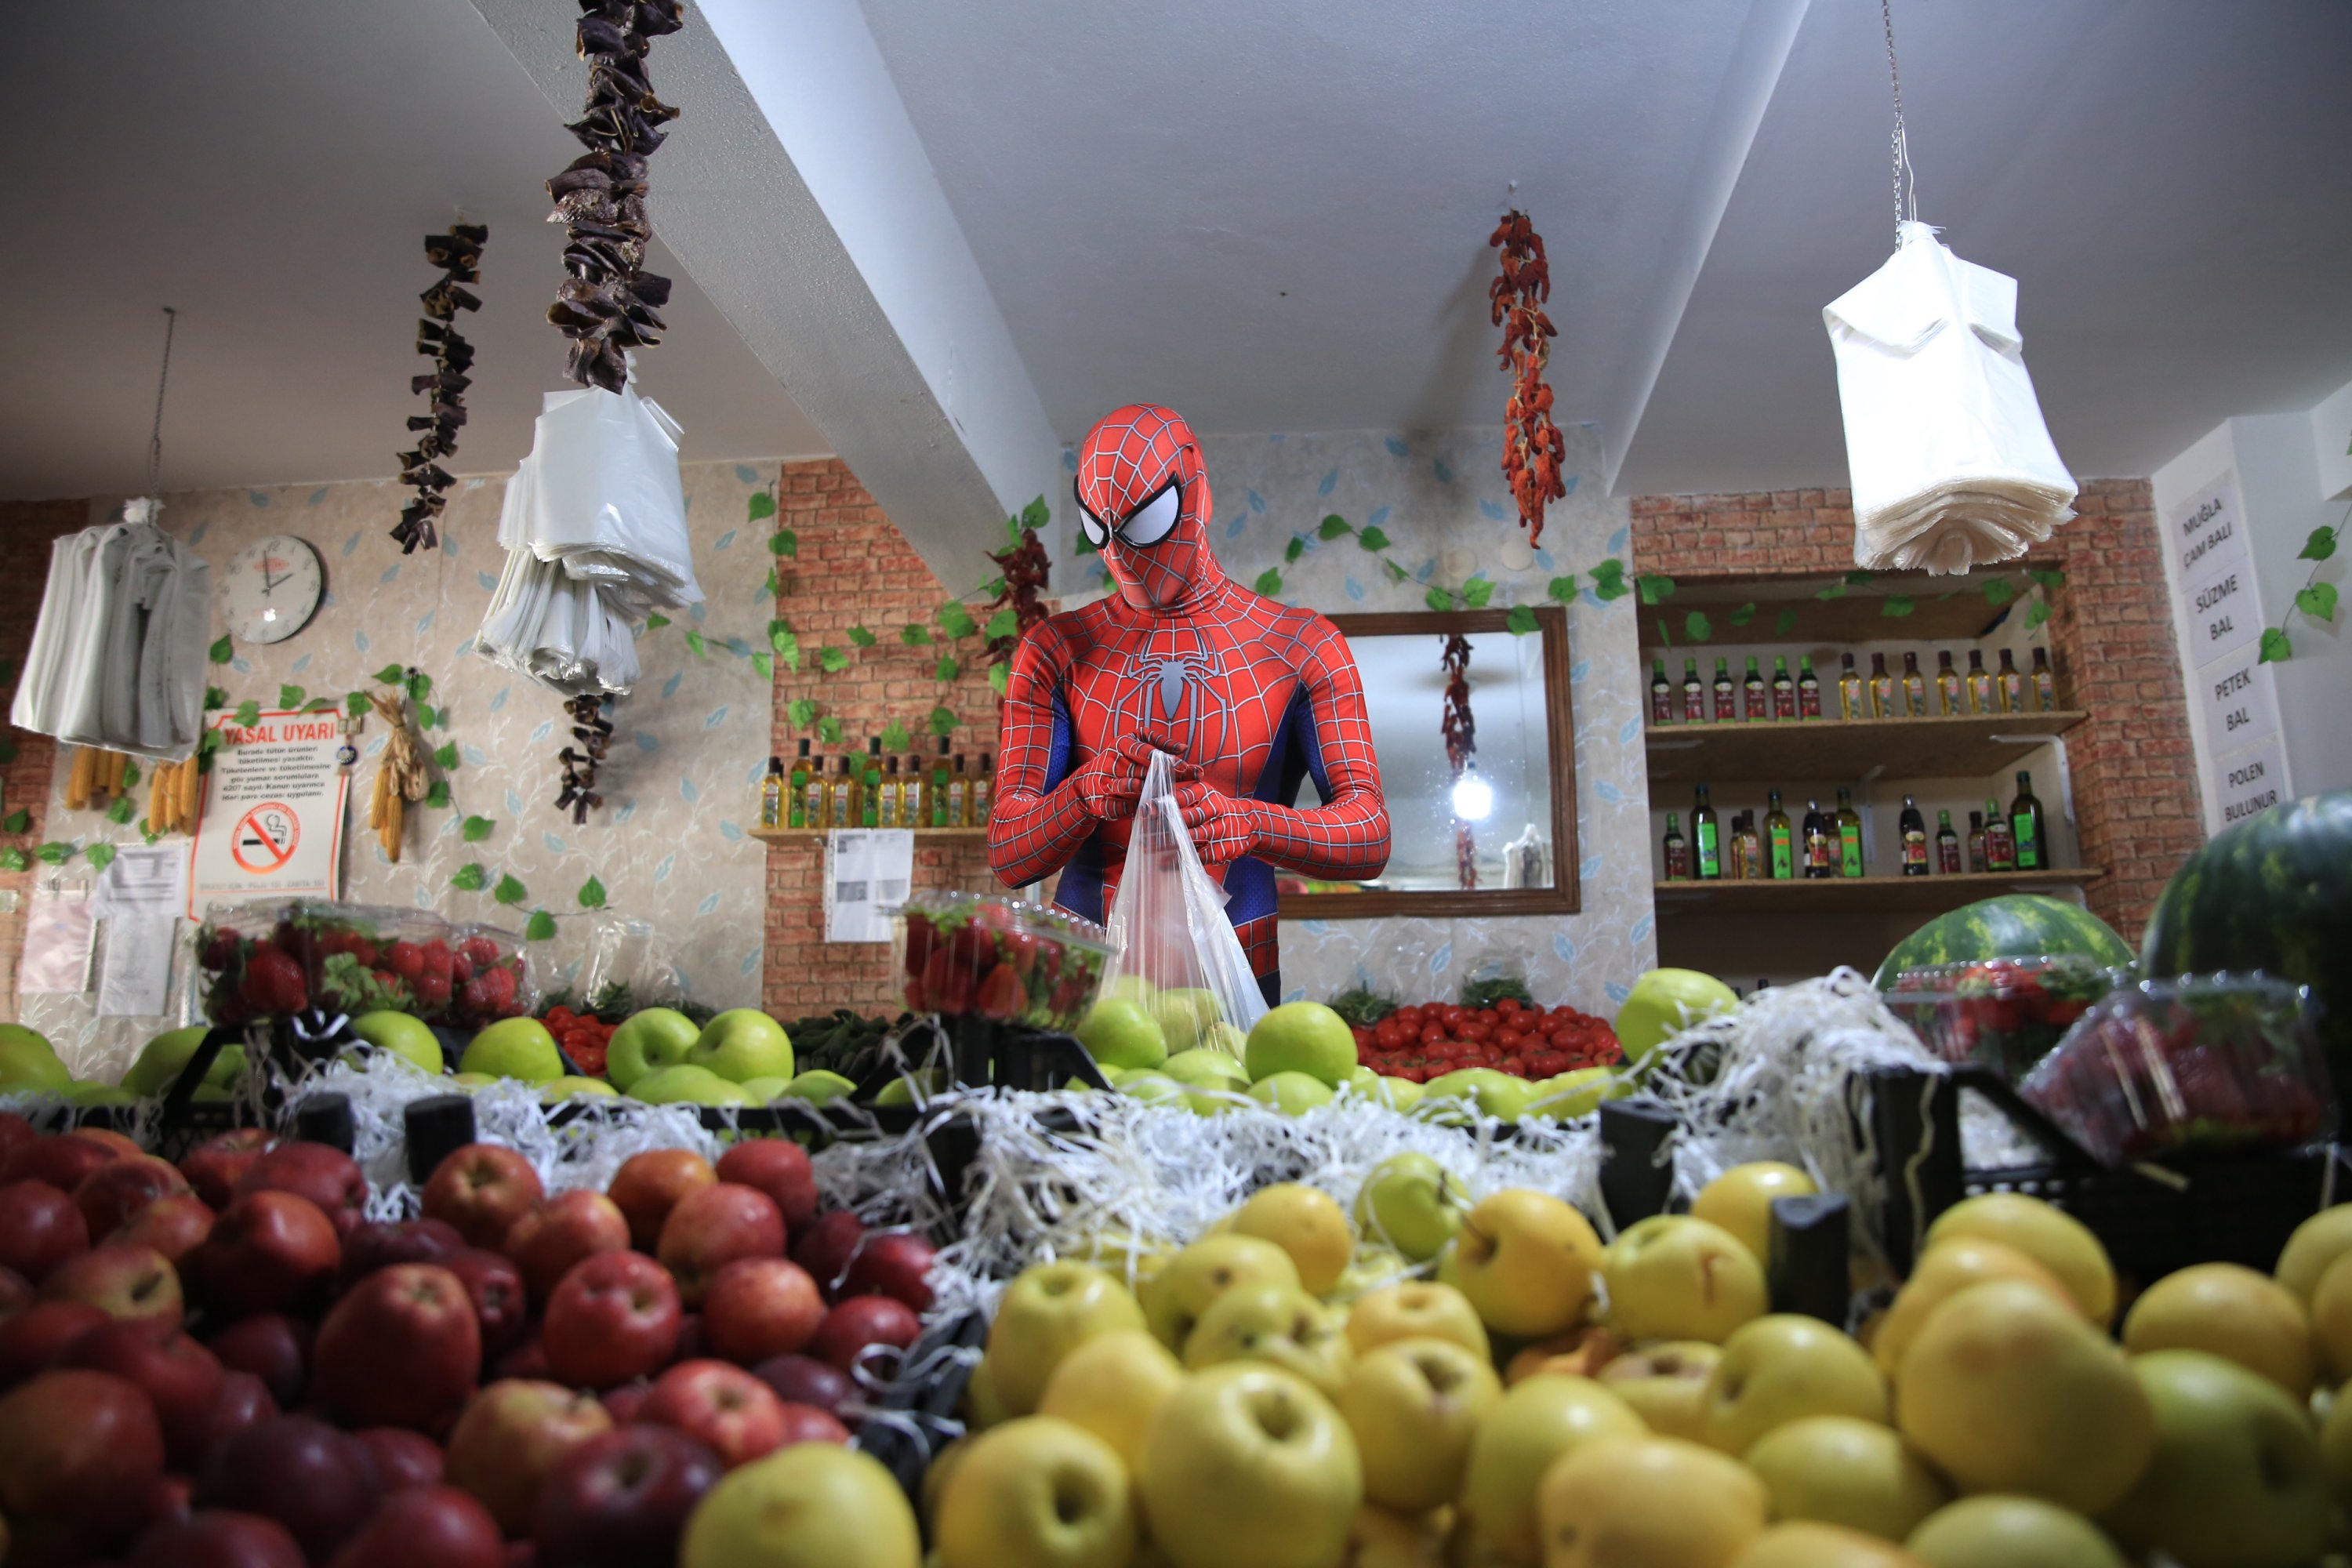 Burak Soylu, wearing the Spiderman costume, picks groceries for citizens, who are staying at home due the coronavirus (COVID-19) pandemic in Antalya, Turkey, Tuesday, April 14, 2020. (AA Photo)